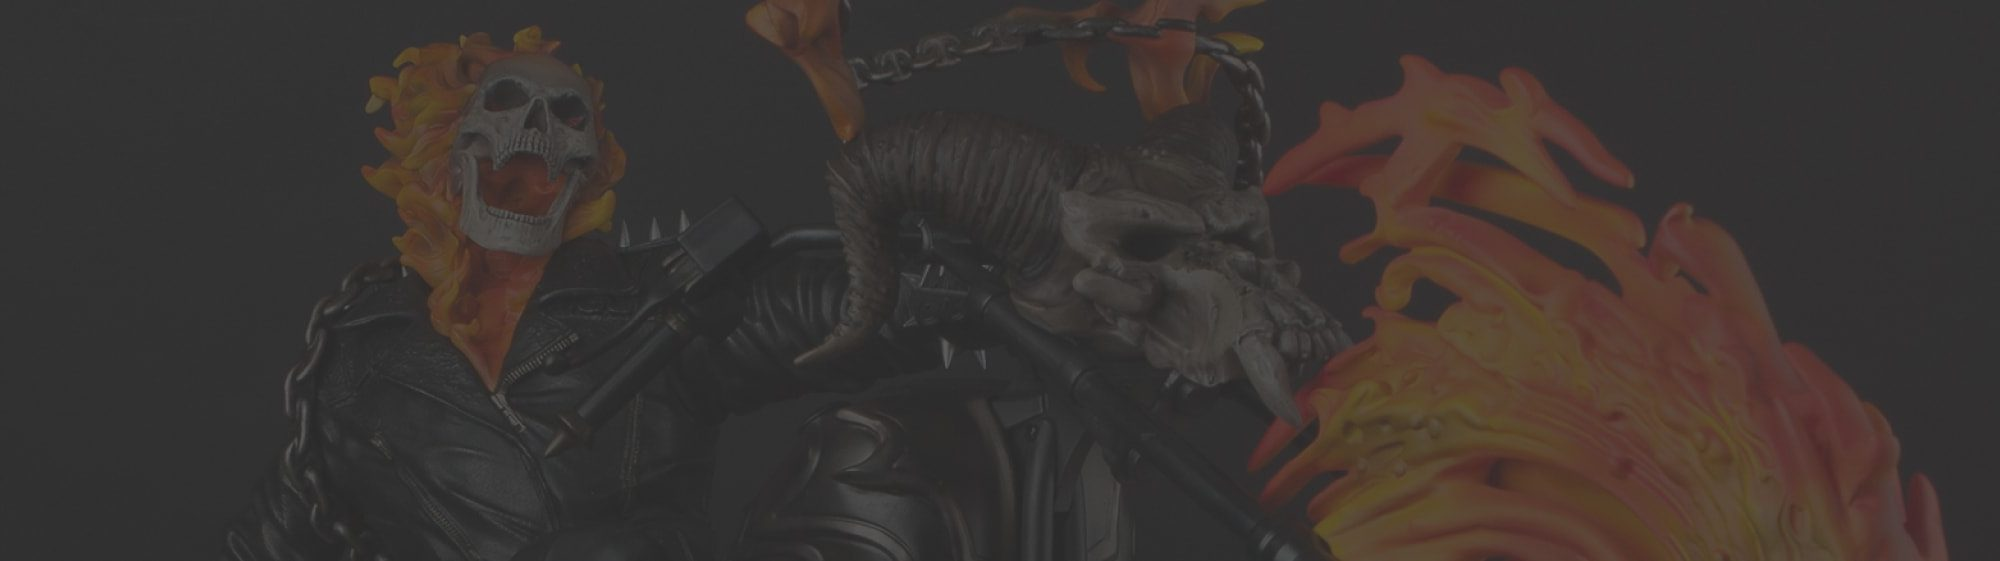 Figmation-banner